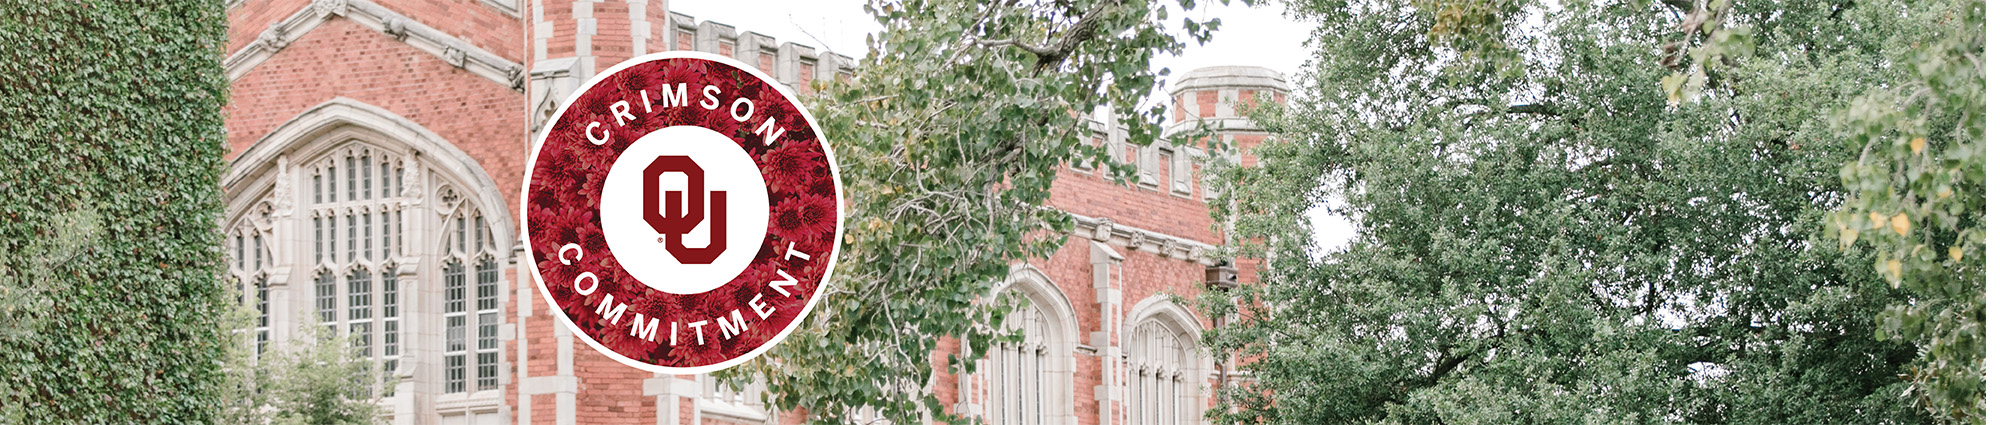 Free tuition and average student fees for qualifying Oklahoma's Promise students. Crimson Commitment is OU's dedication to making OU affordable for OK residents.